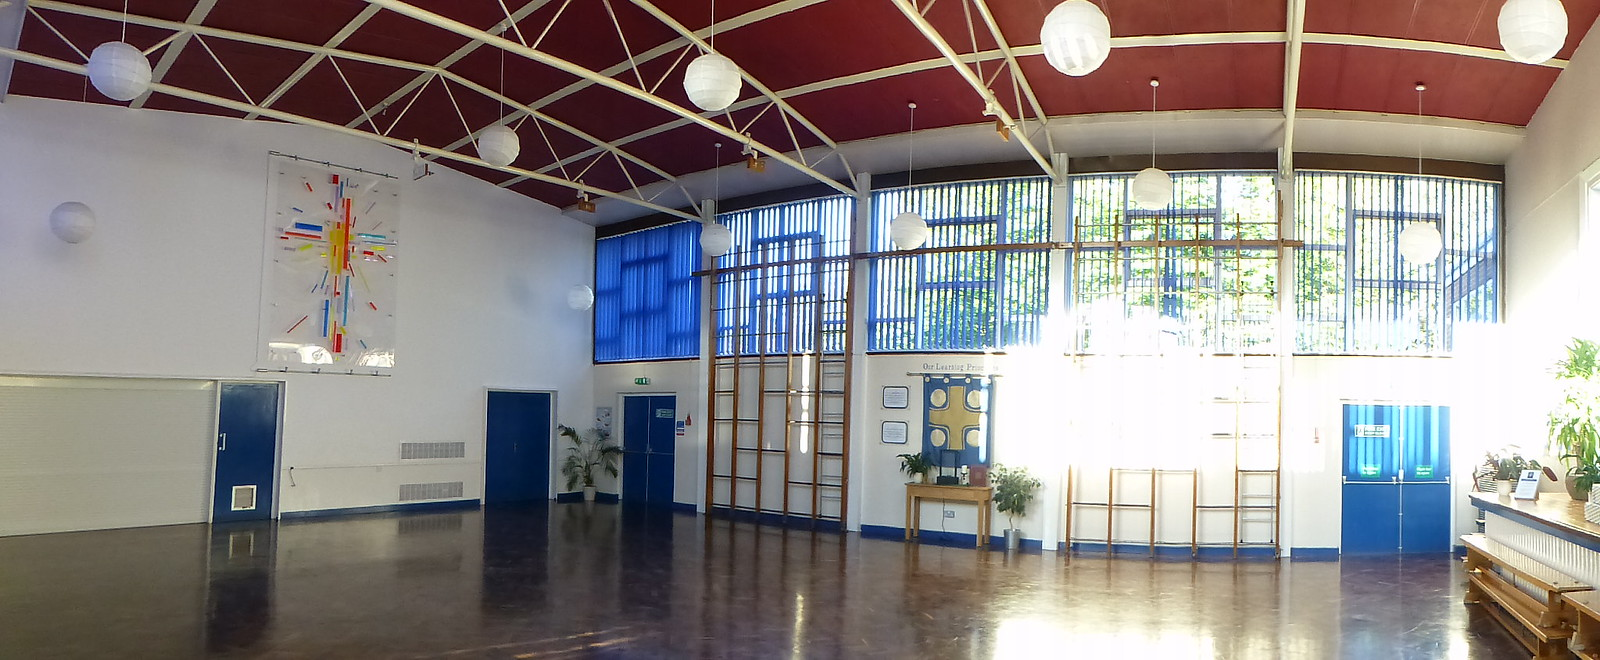 Upper Years Hall